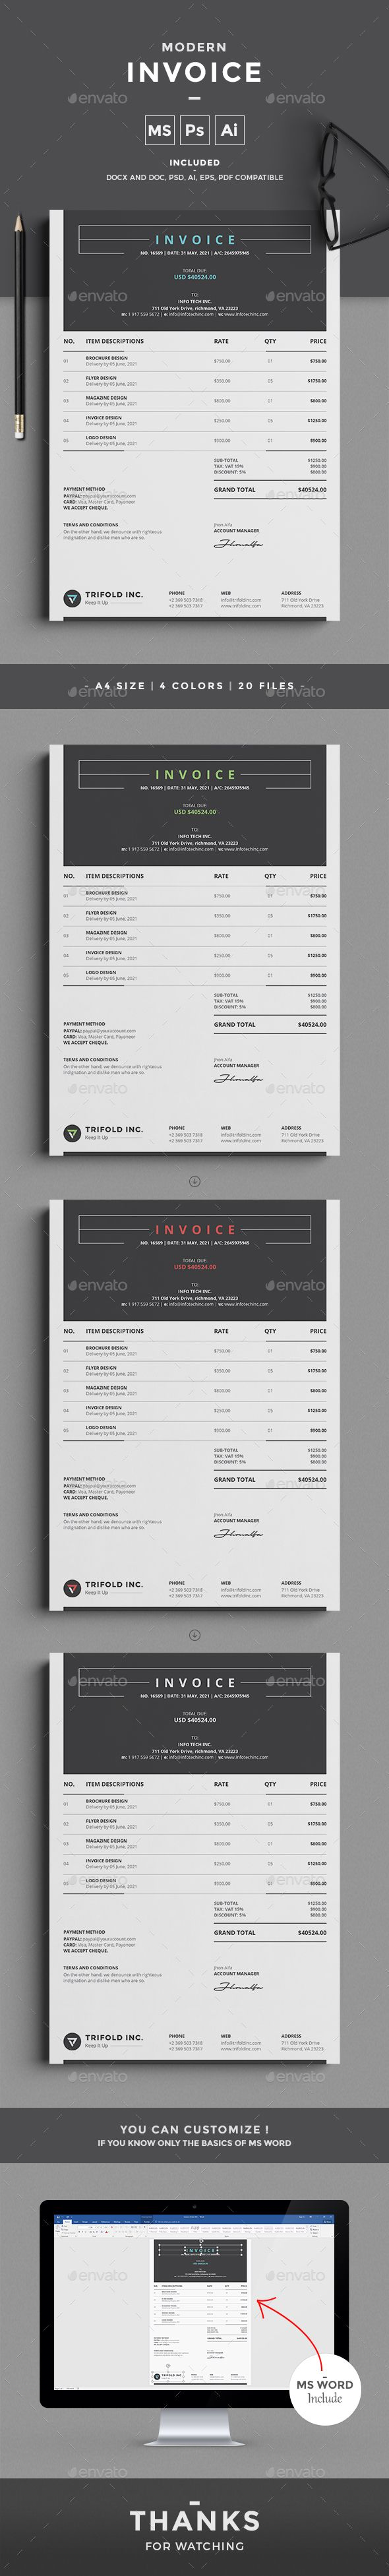 Overdue Invoice Letter Sample Excel Best  Invoice Template Ideas On Pinterest  Invoice Layout  Electronic Invoicing Pdf with Receipt Acknowledgement Excel Invoice Freeagent Invoice